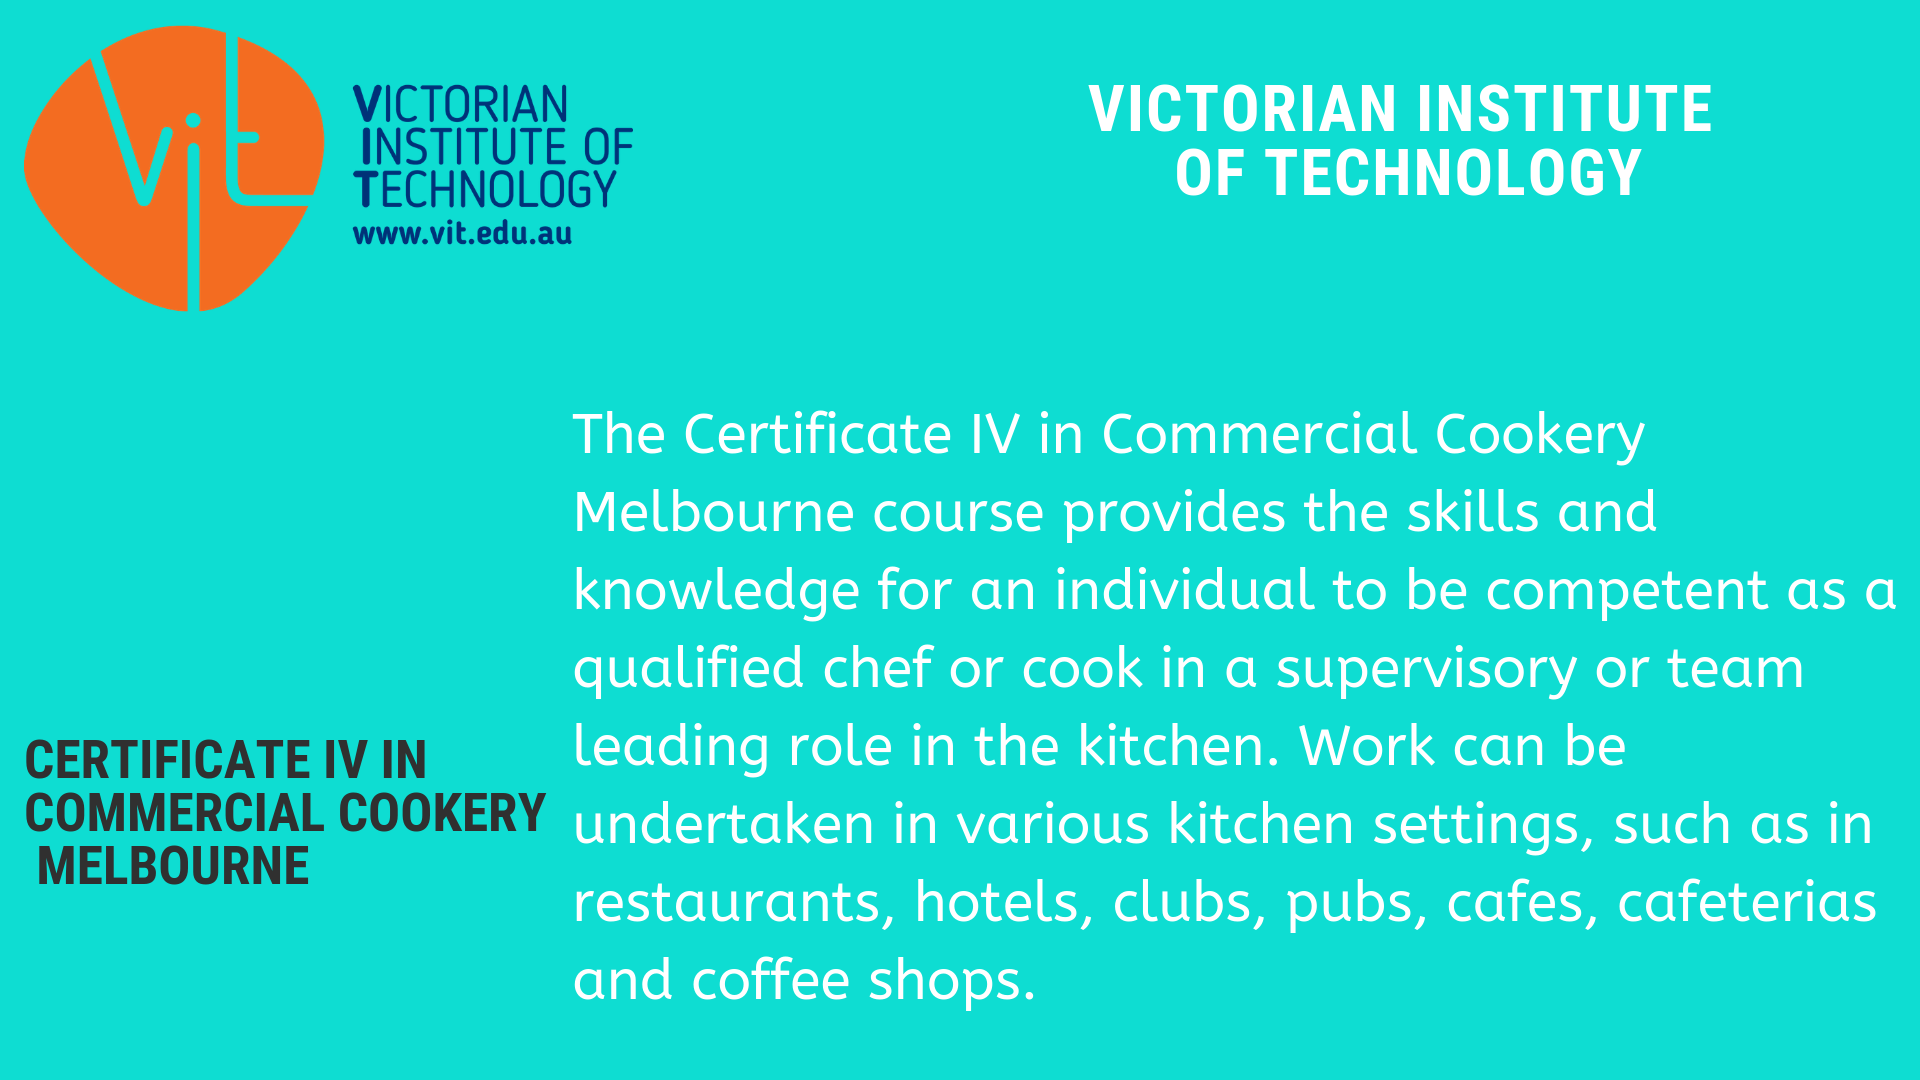 Certificate IV in Commercial Cookery (With images